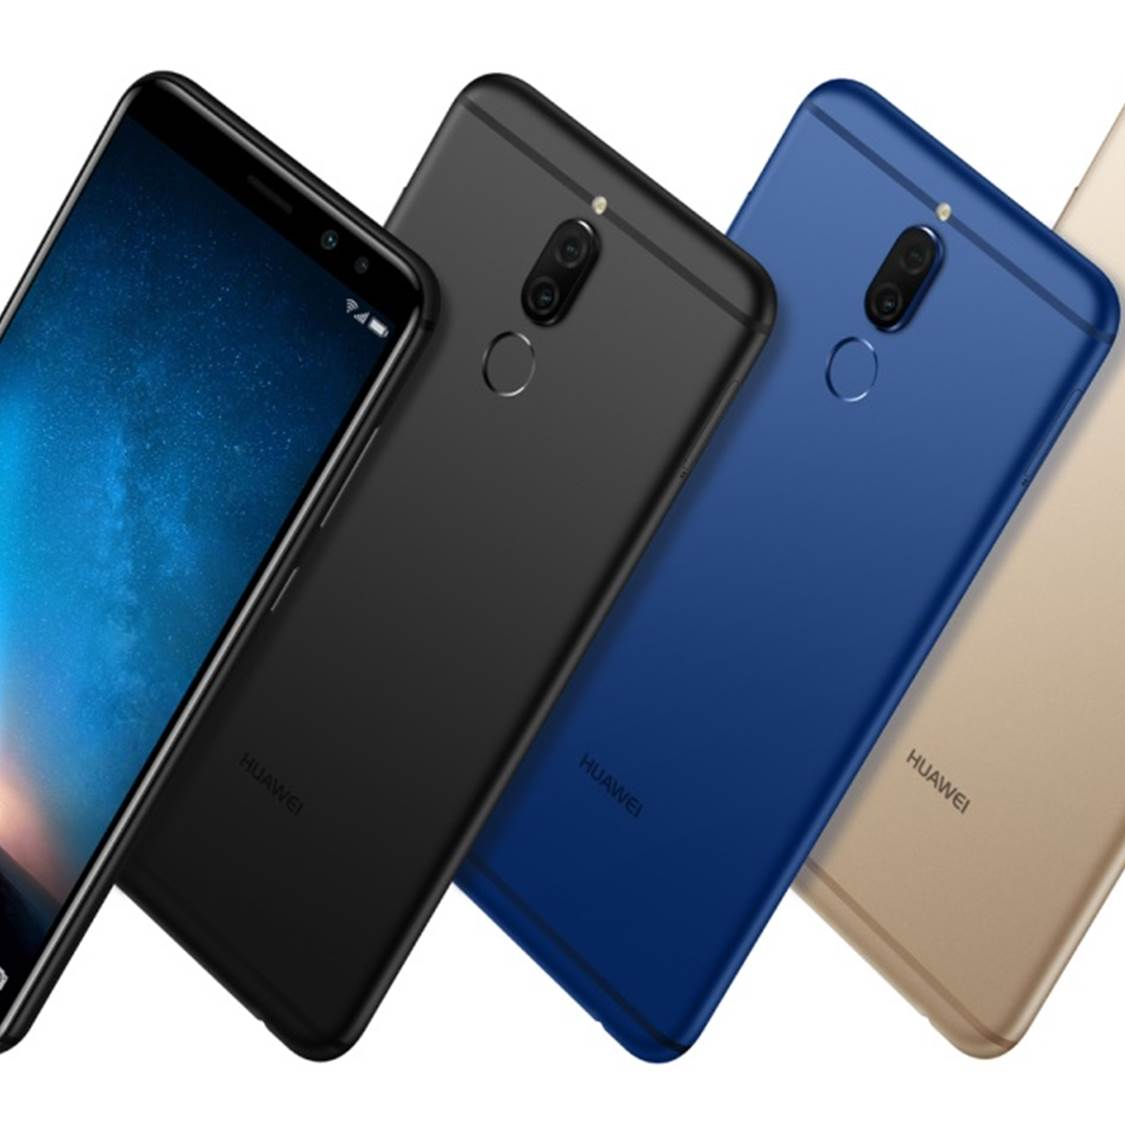 Huawei Mate 10 Lite Full Specifications Mobiledevices